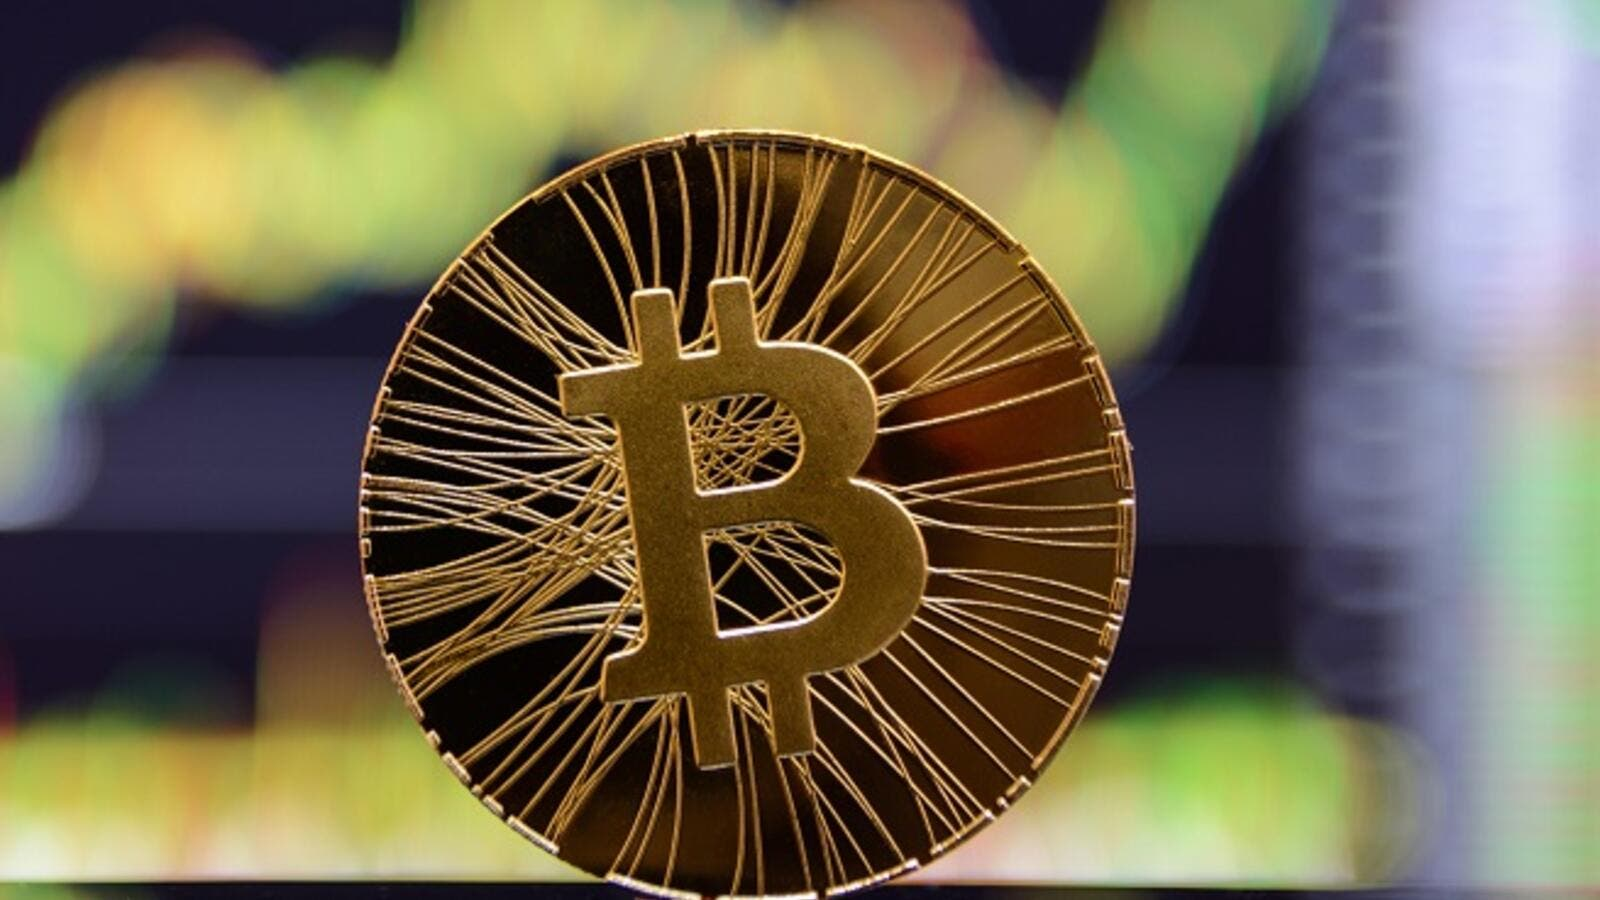 """Support the resistance financially through the Bitcoin currency,"" Hamas said, adding the exact mechanism would be announced later. (Shutterstock)"